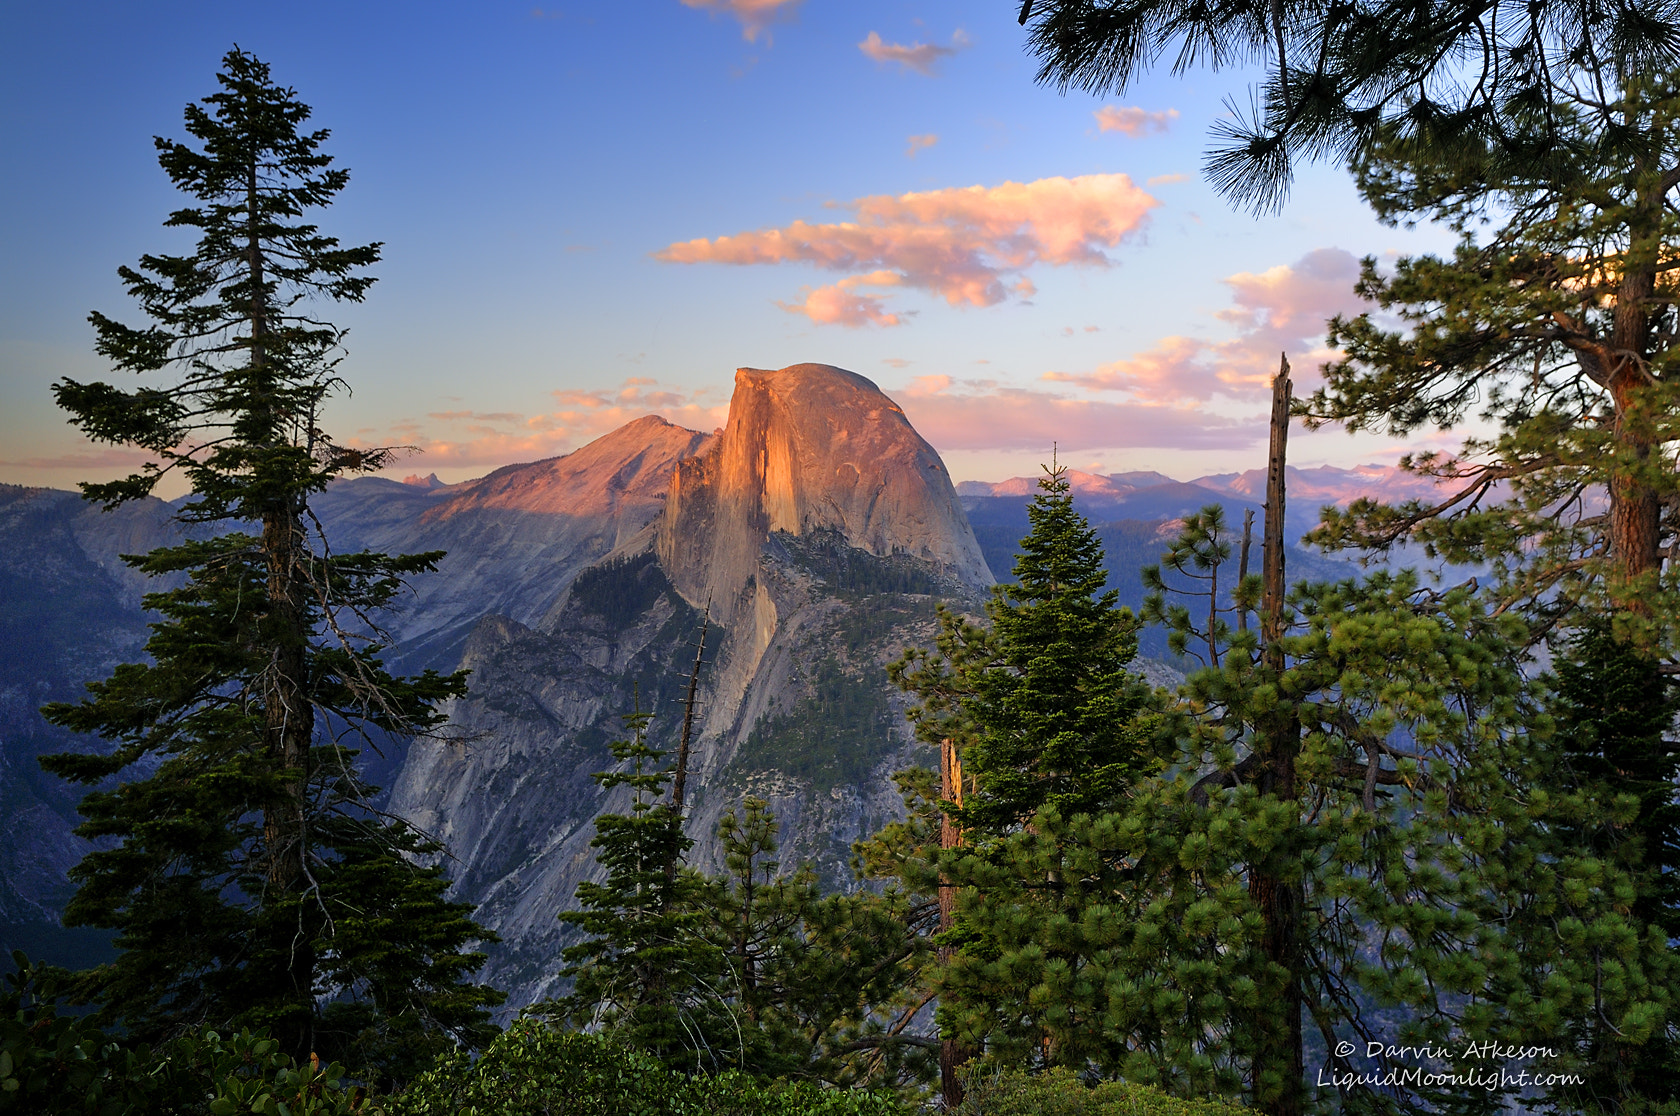 Photograph Framing an American Icon by Darvin Atkeson on 500px